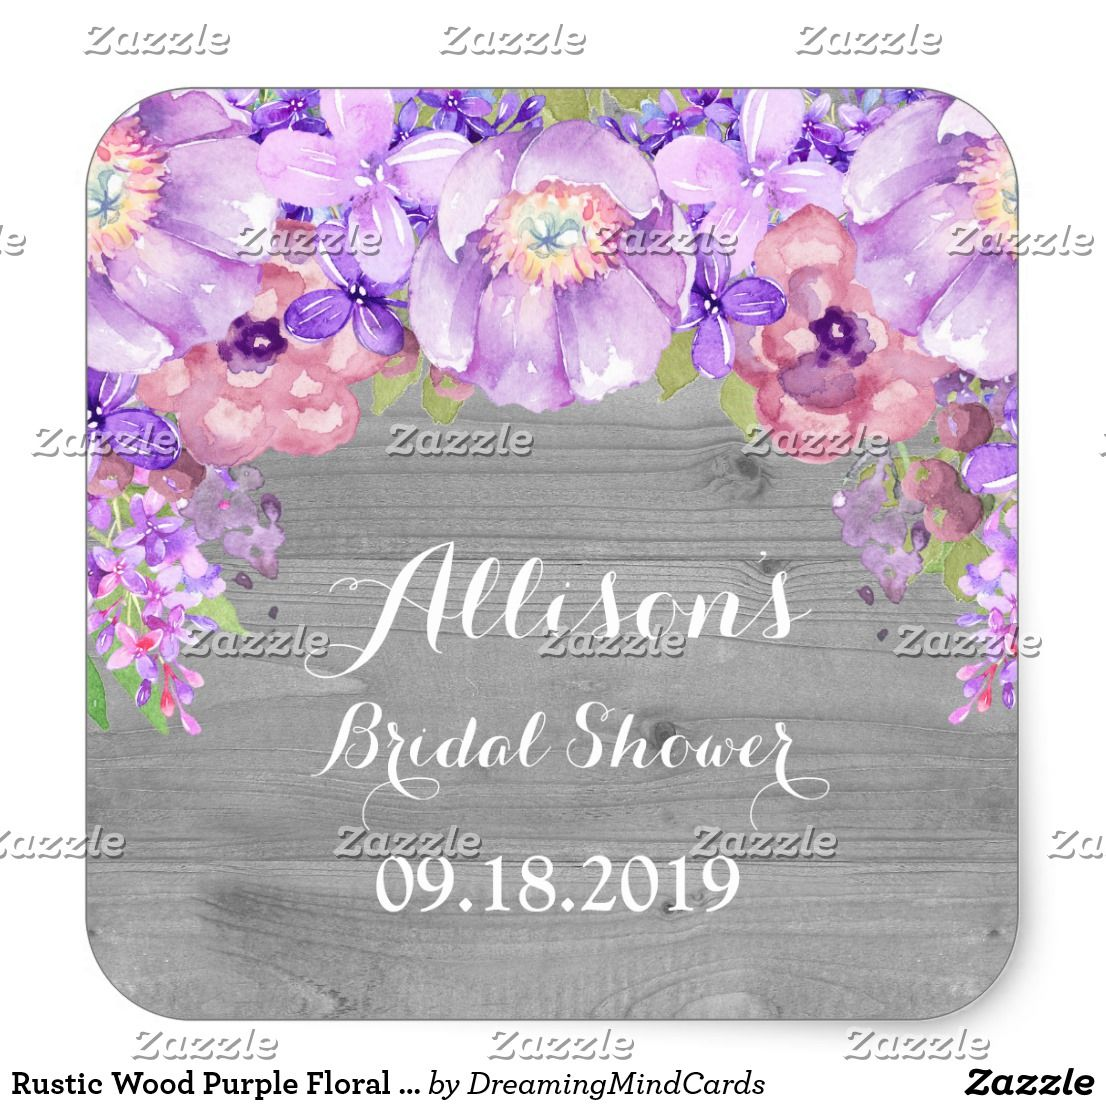 Wedding decorations ideas at home january 2019 Rustic Wood Purple Floral Bridal Shower Favor Tag Bridal Shower